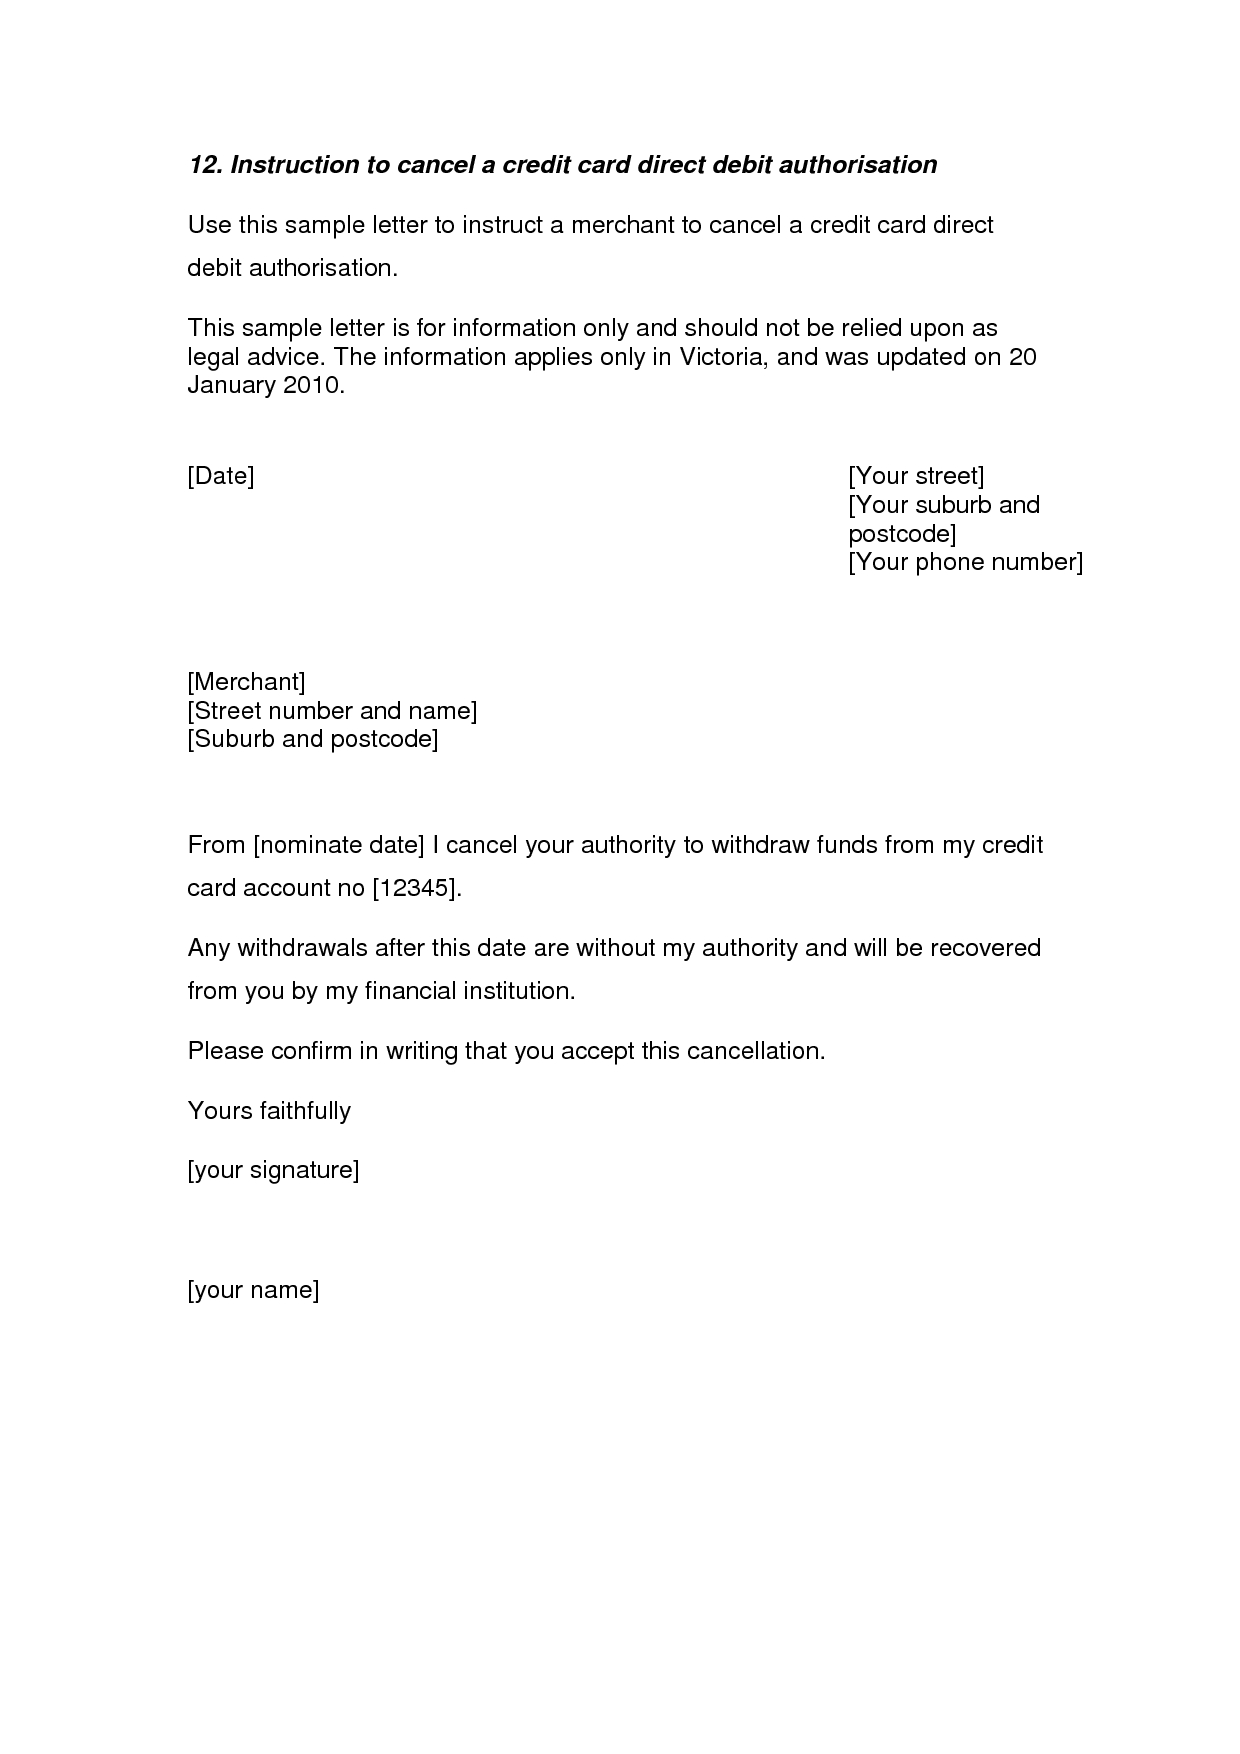 insurance policy cancellation letter template Collection-Credit Card Cancellation letter A Credit card cancellation letter is written by an individual who does not want to continue with the services of a credit 6-h